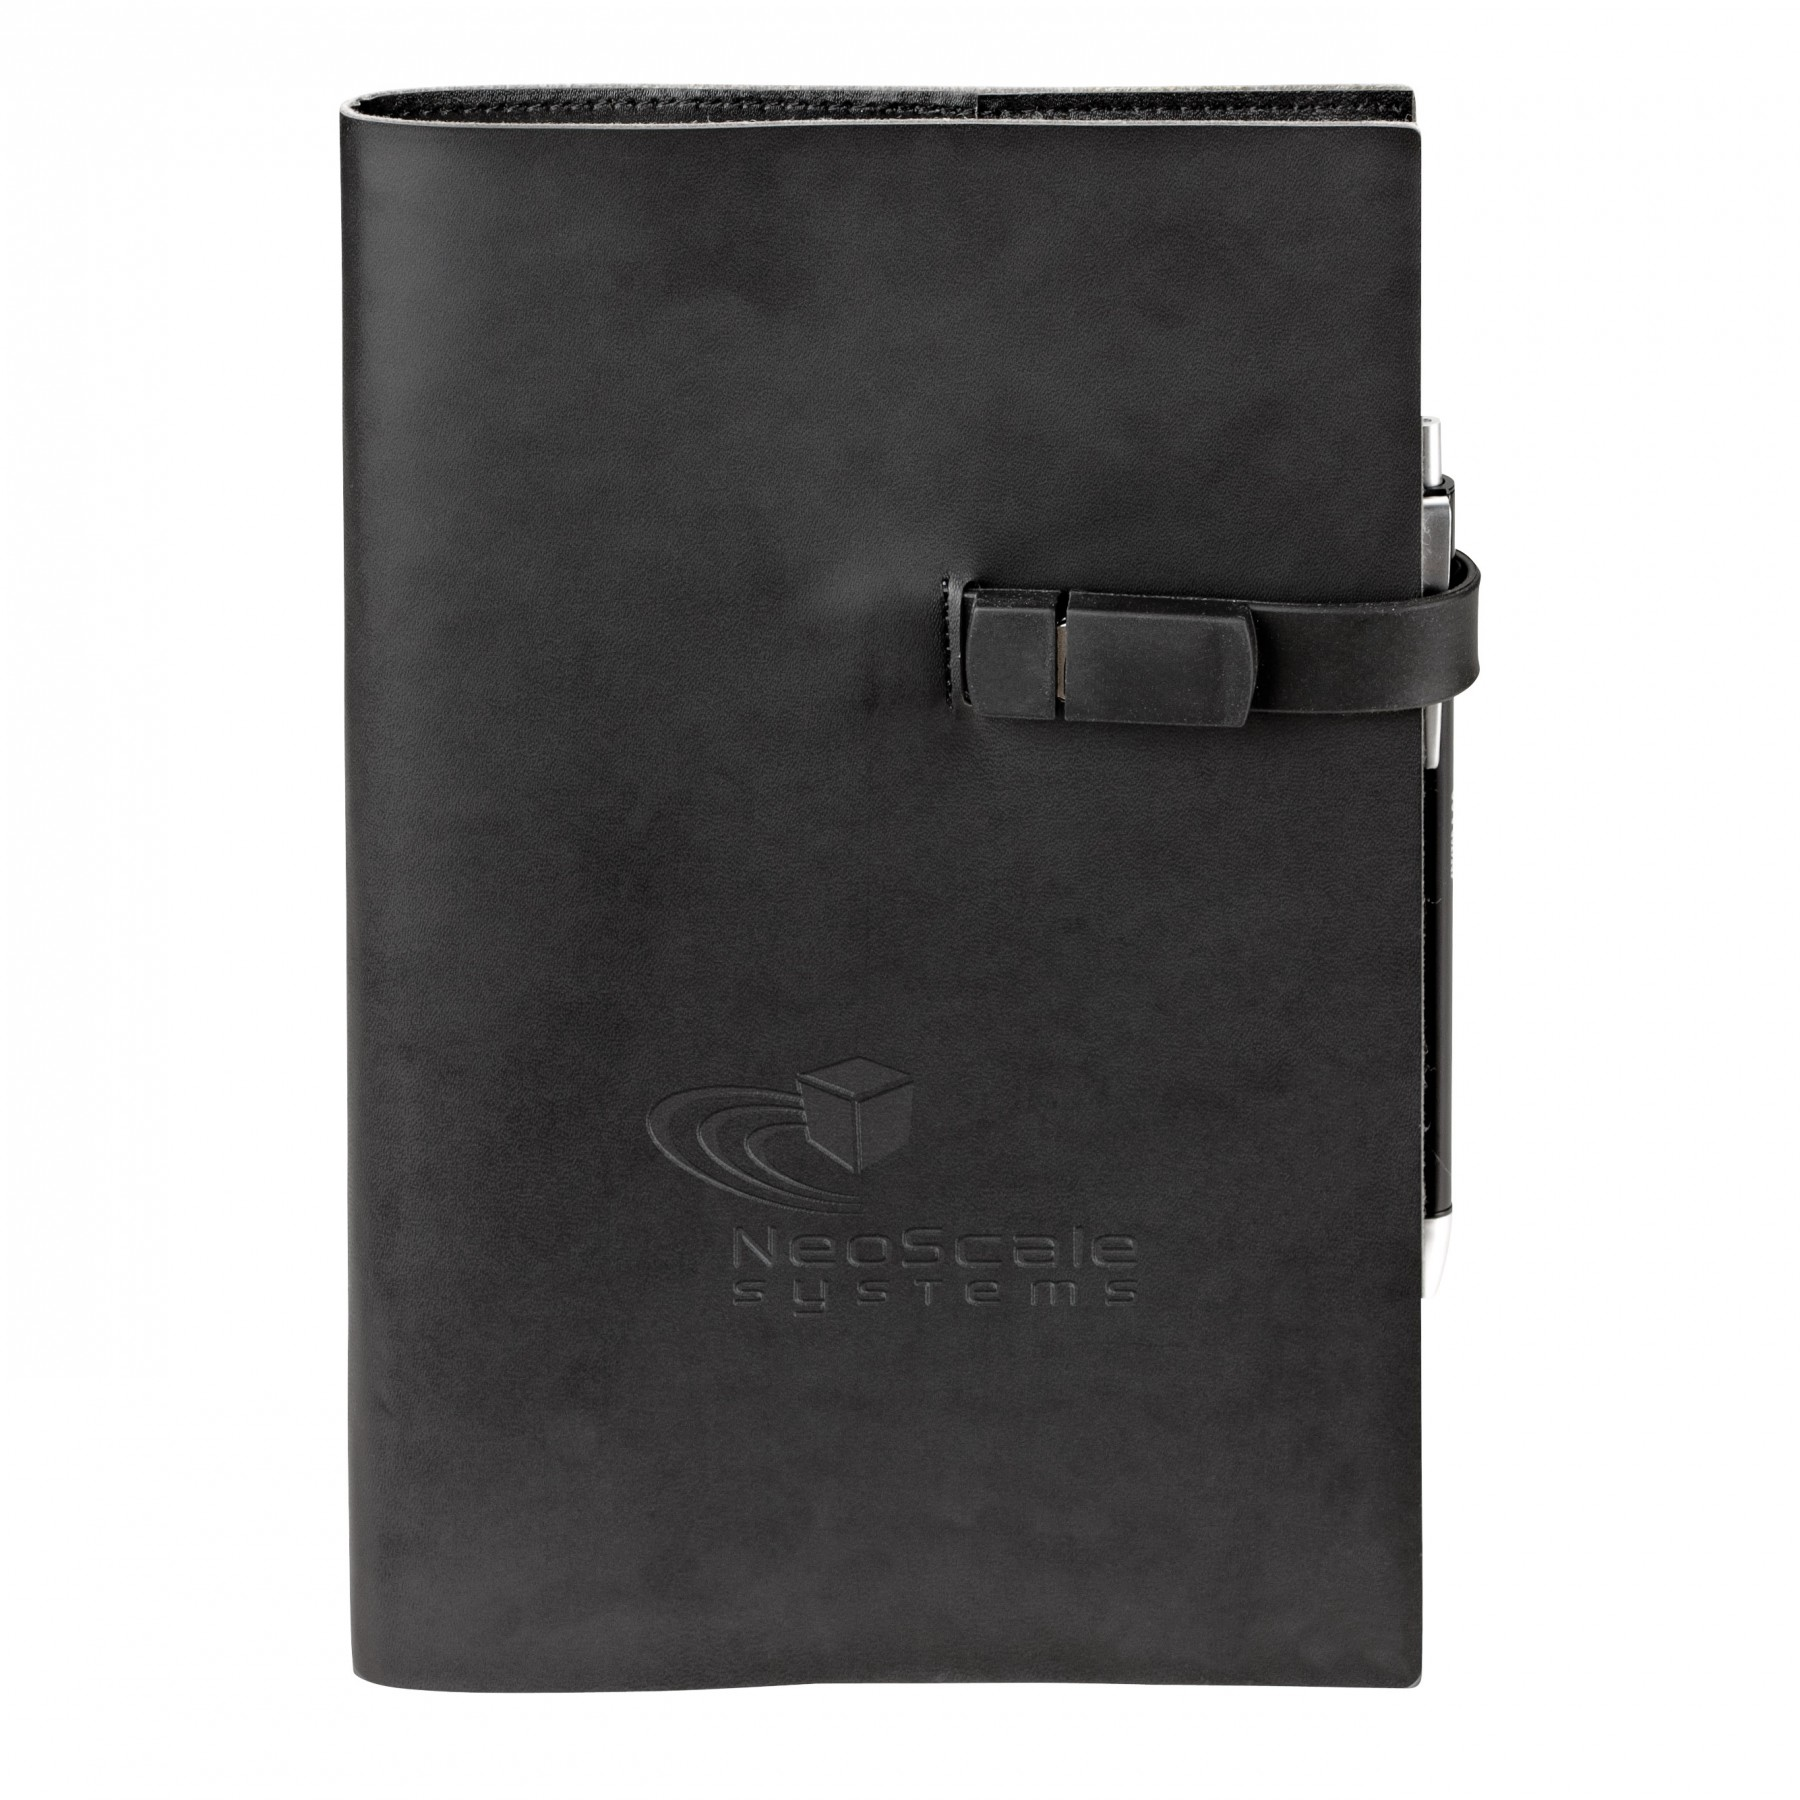 8gb USB Refillable Journal Combo, ST4312, Debossed Logo